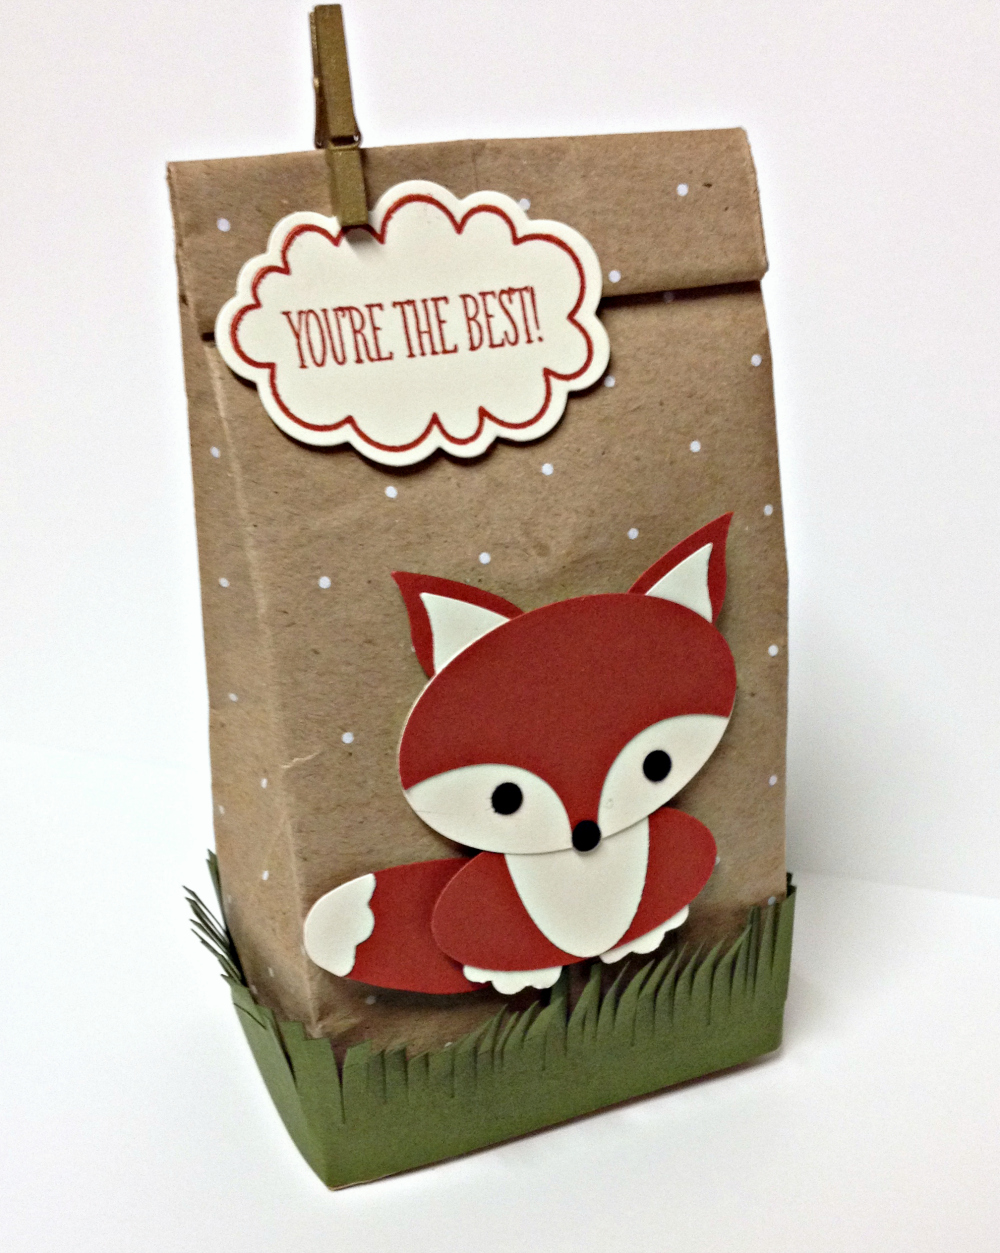 Foxy Polk-a-Dot Tag a Bag Gift Bags - EurekaStampers Blog Hop